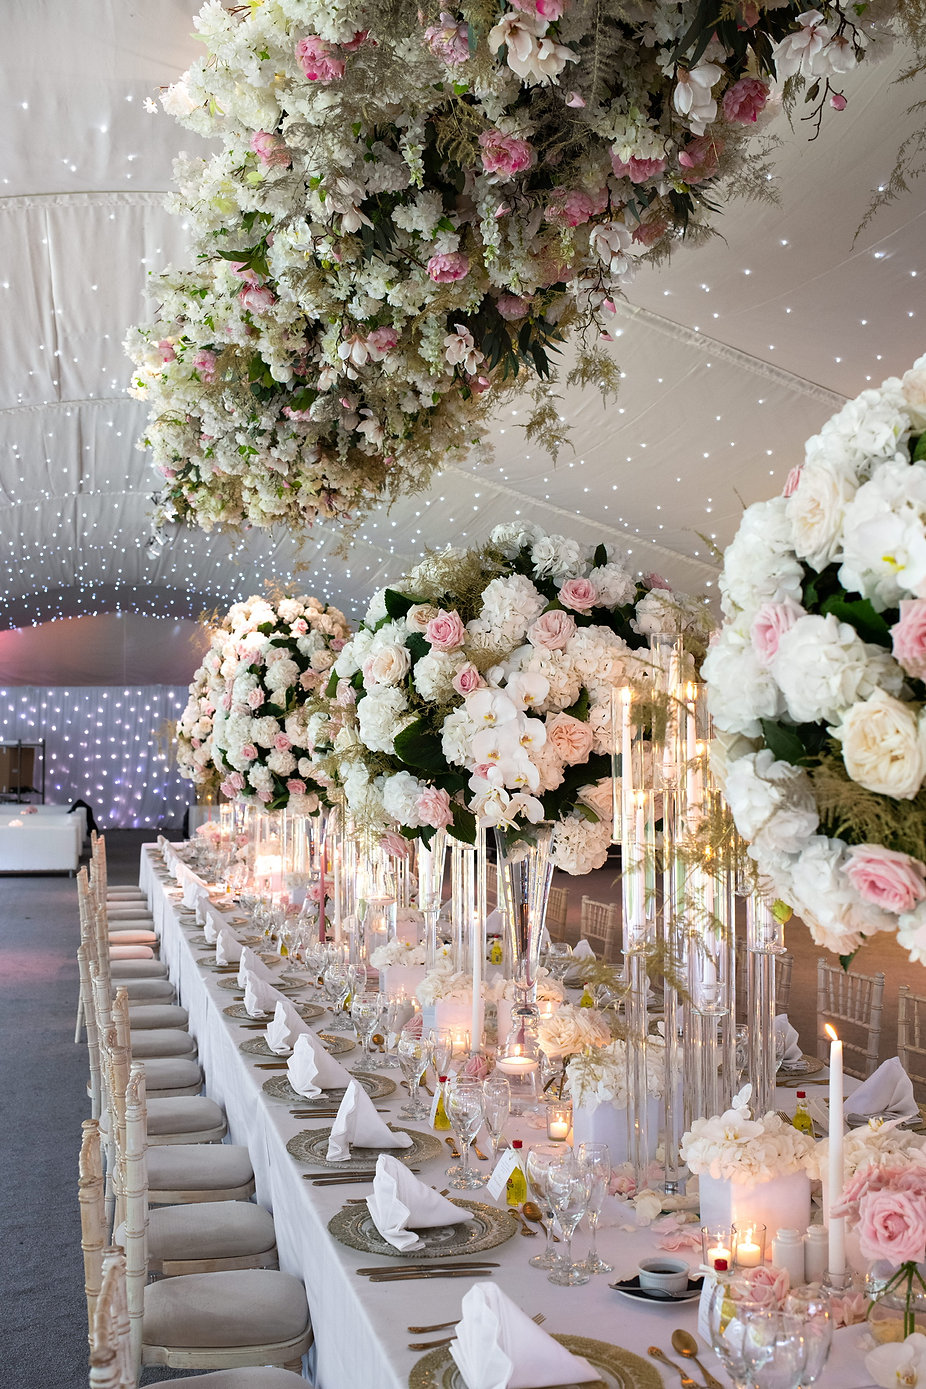 Pink and white hanging floral wedding design